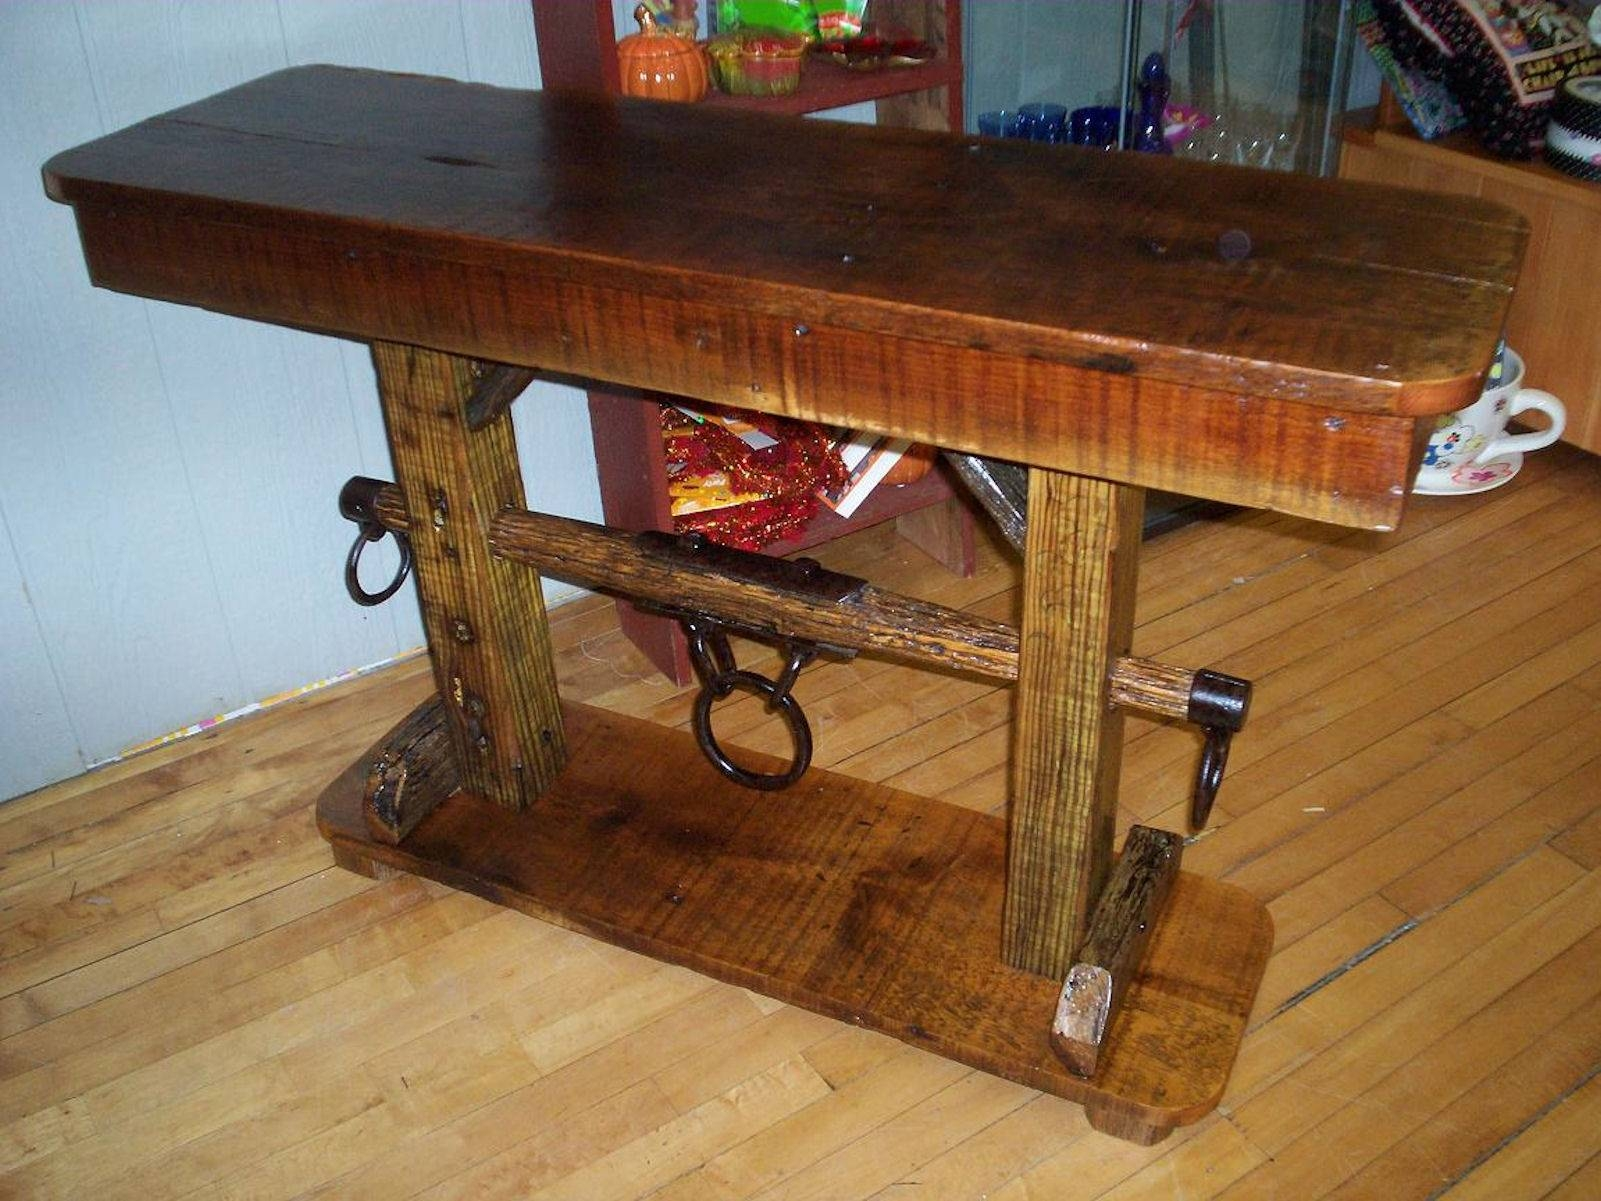 Sofa Table Design: Barn Wood Sofa Table Awesome Rustic Design for Barnwood Sofa Tables (Image 11 of 15)